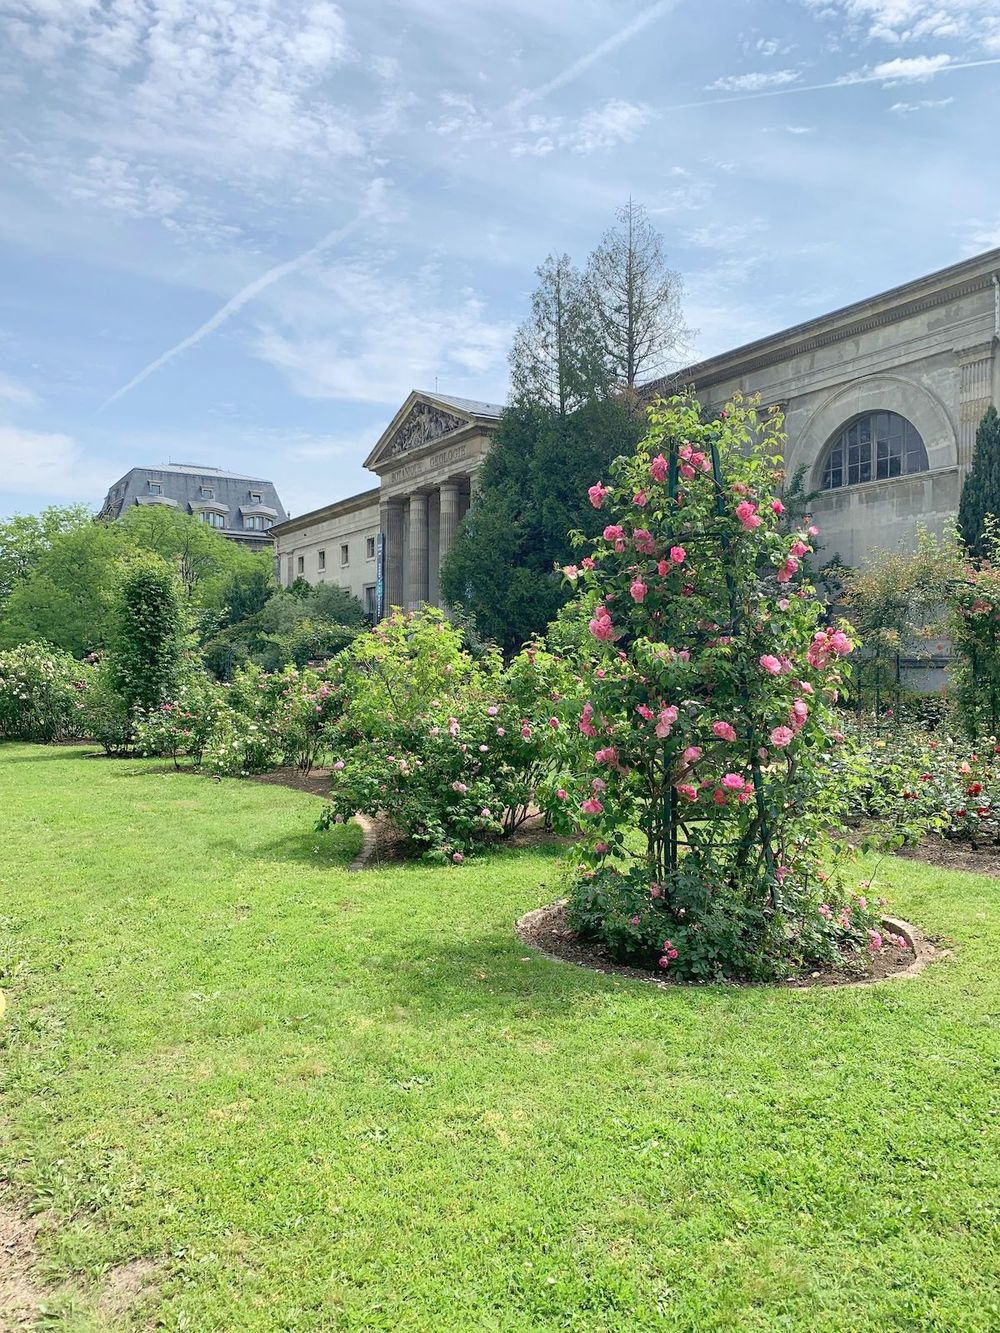 Jardin Des Plantes, Paris France Botanical Garden